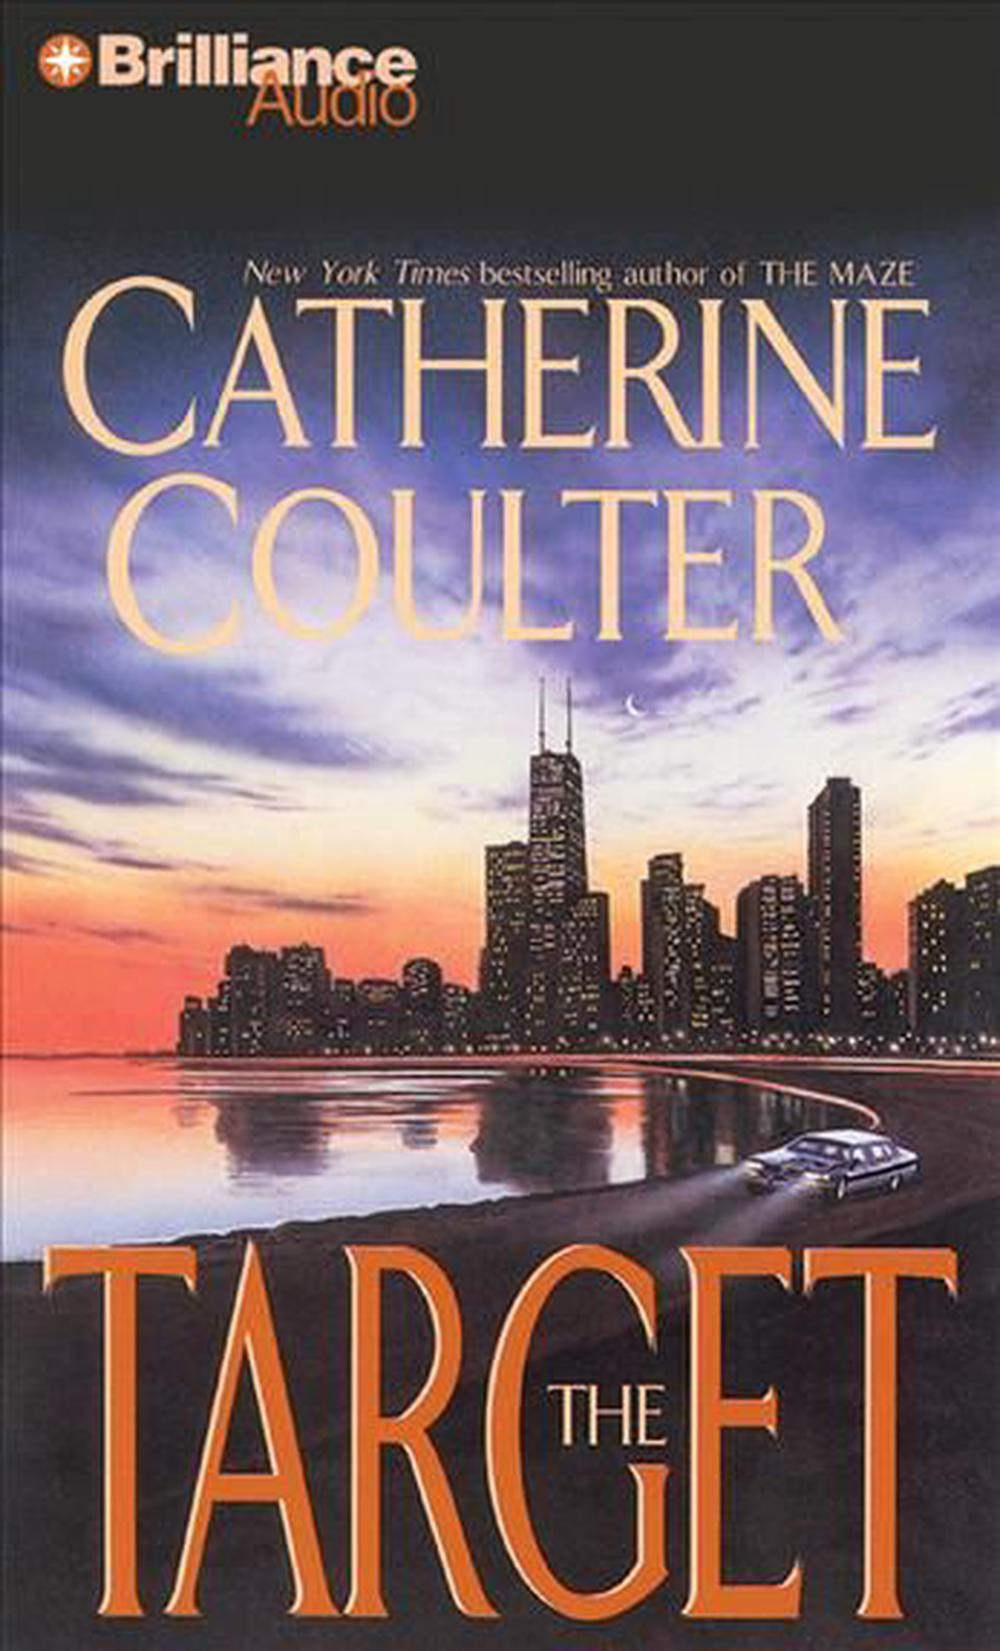 Catherine Coulter Libros Details About The Target By Catherine Coulter English Compact Disc Book Free Shipping